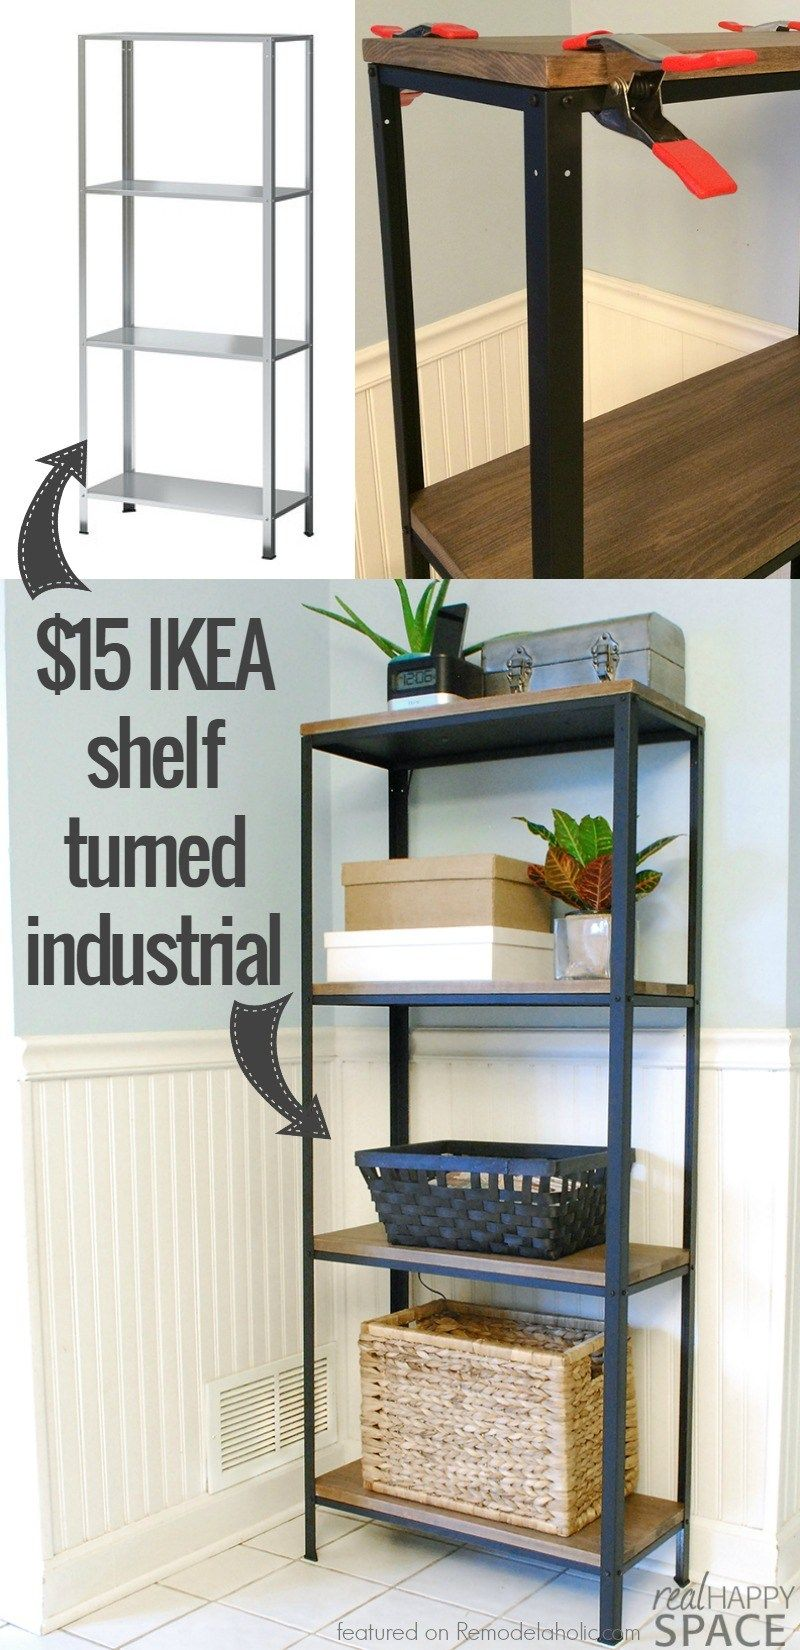 22 Innovative DIY Furniture Hacks Yielding Pieces of Decor and Functionality! -   24 diy furniture ikea ideas